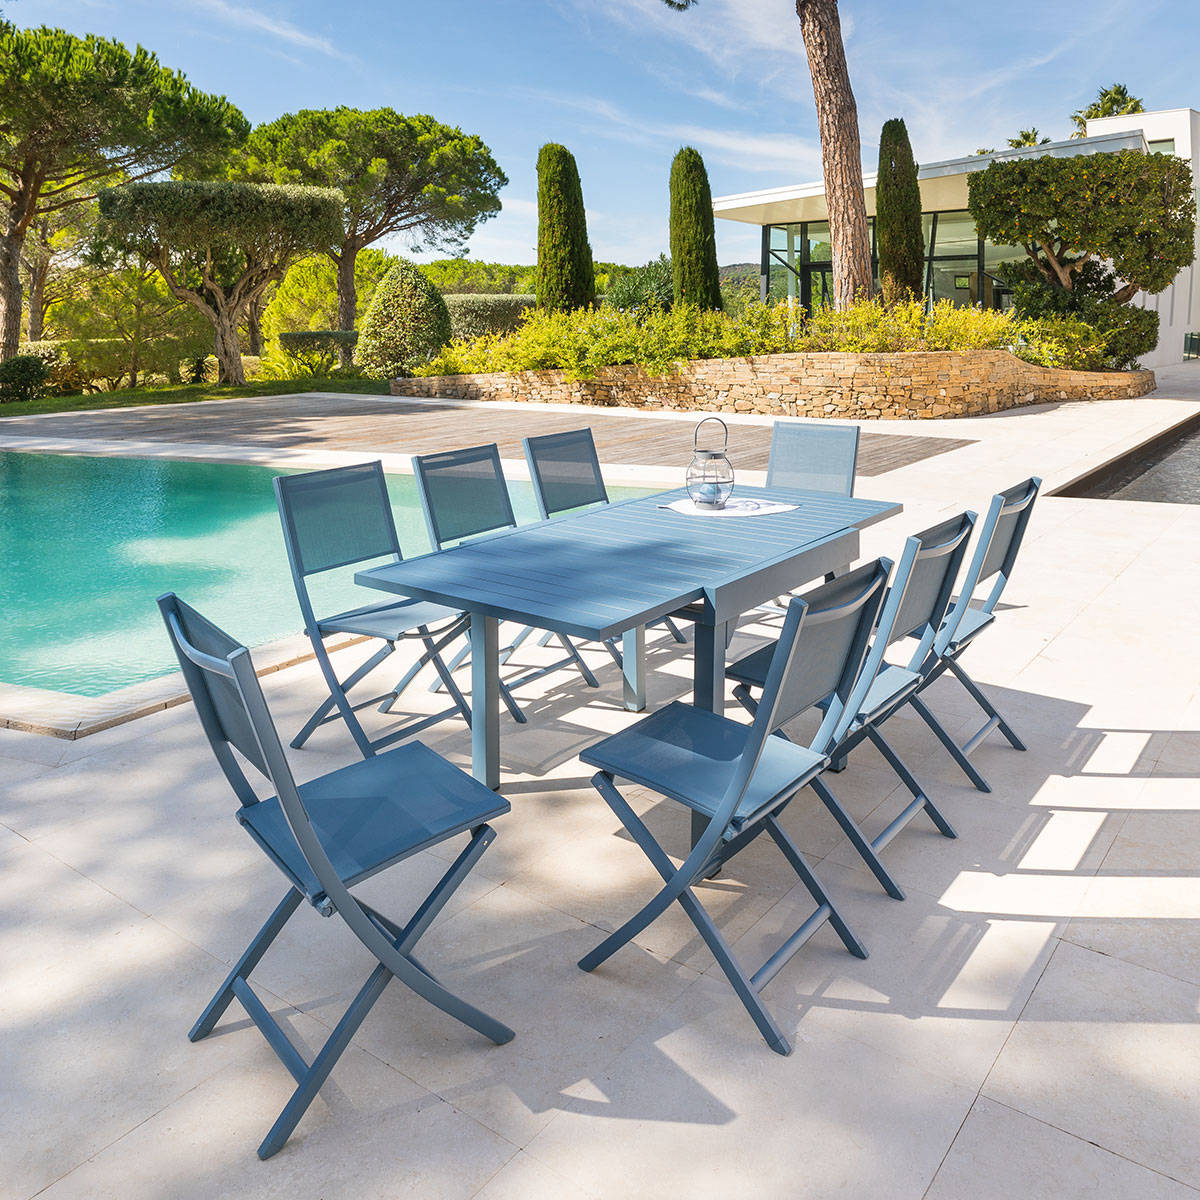 Table de jardin extensible piazza bleu orage hesp ride 8 for Table jardin bleu